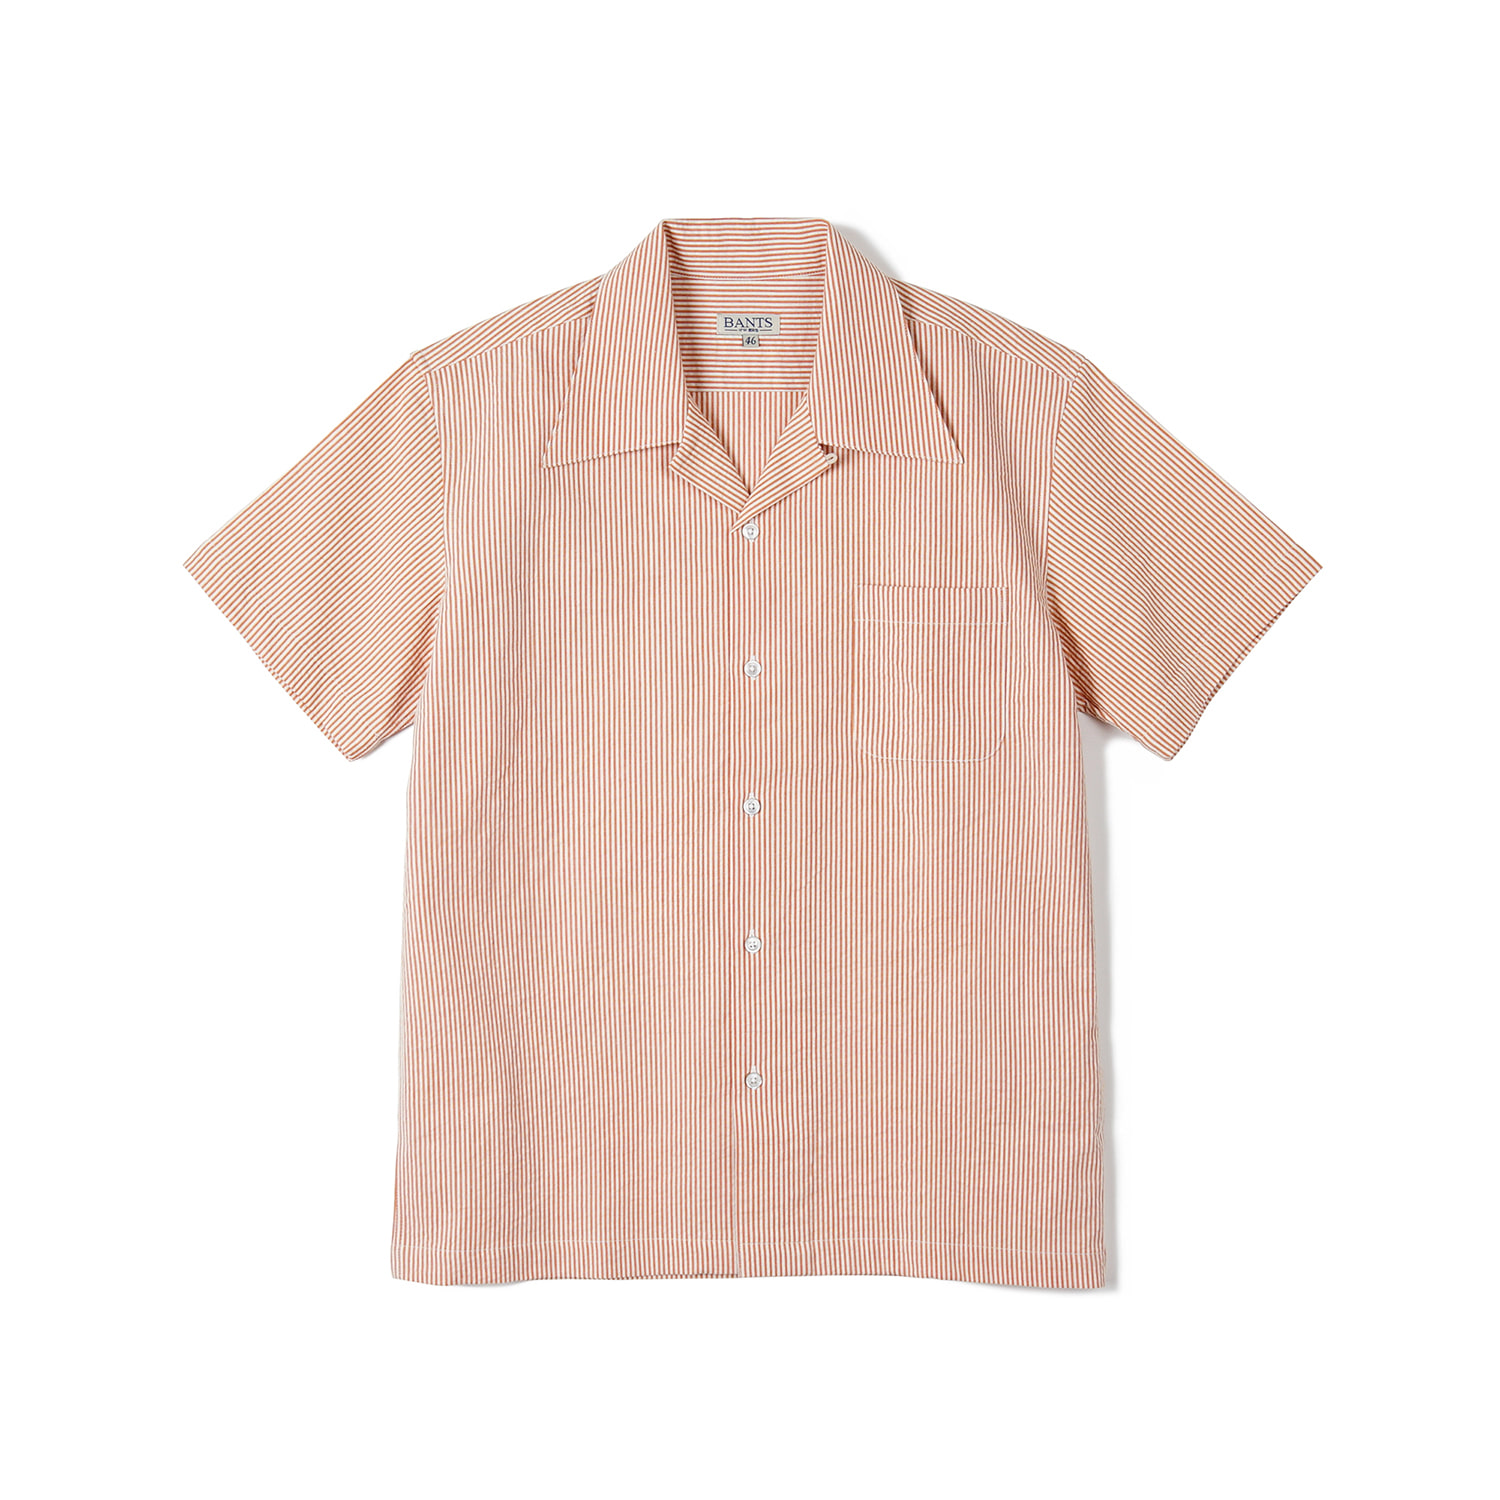 FLB Stripe Seersucker Open Collar Shirt - OrangeBANTS(반츠)